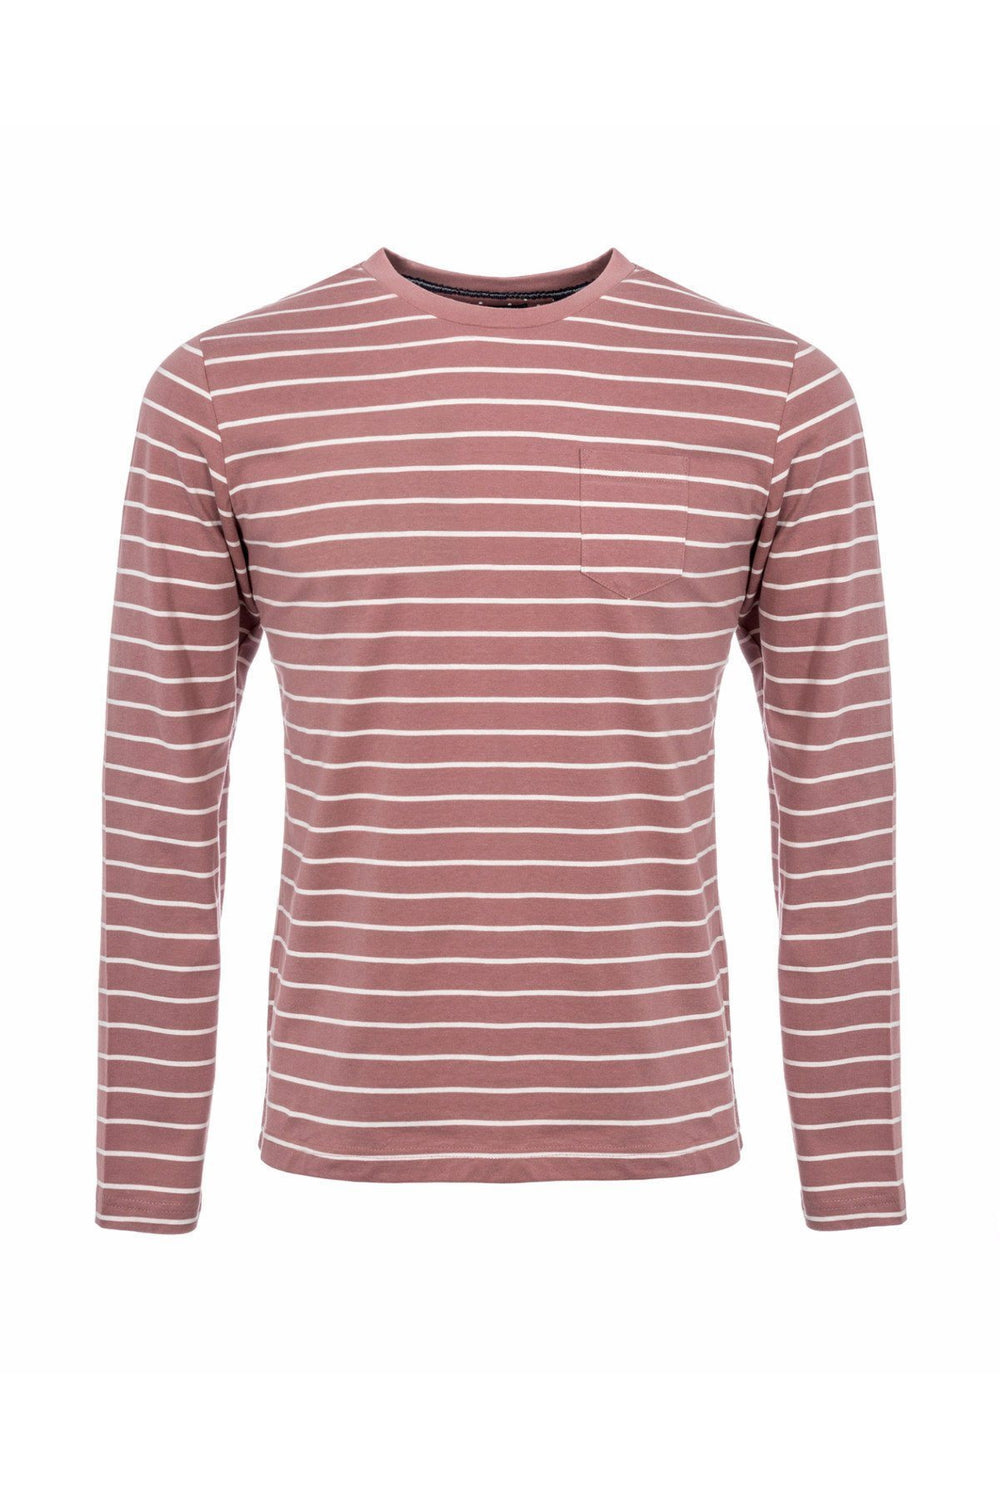 T-Shirts - Long Sleeve T-Shirt Stripe Dusty Pink